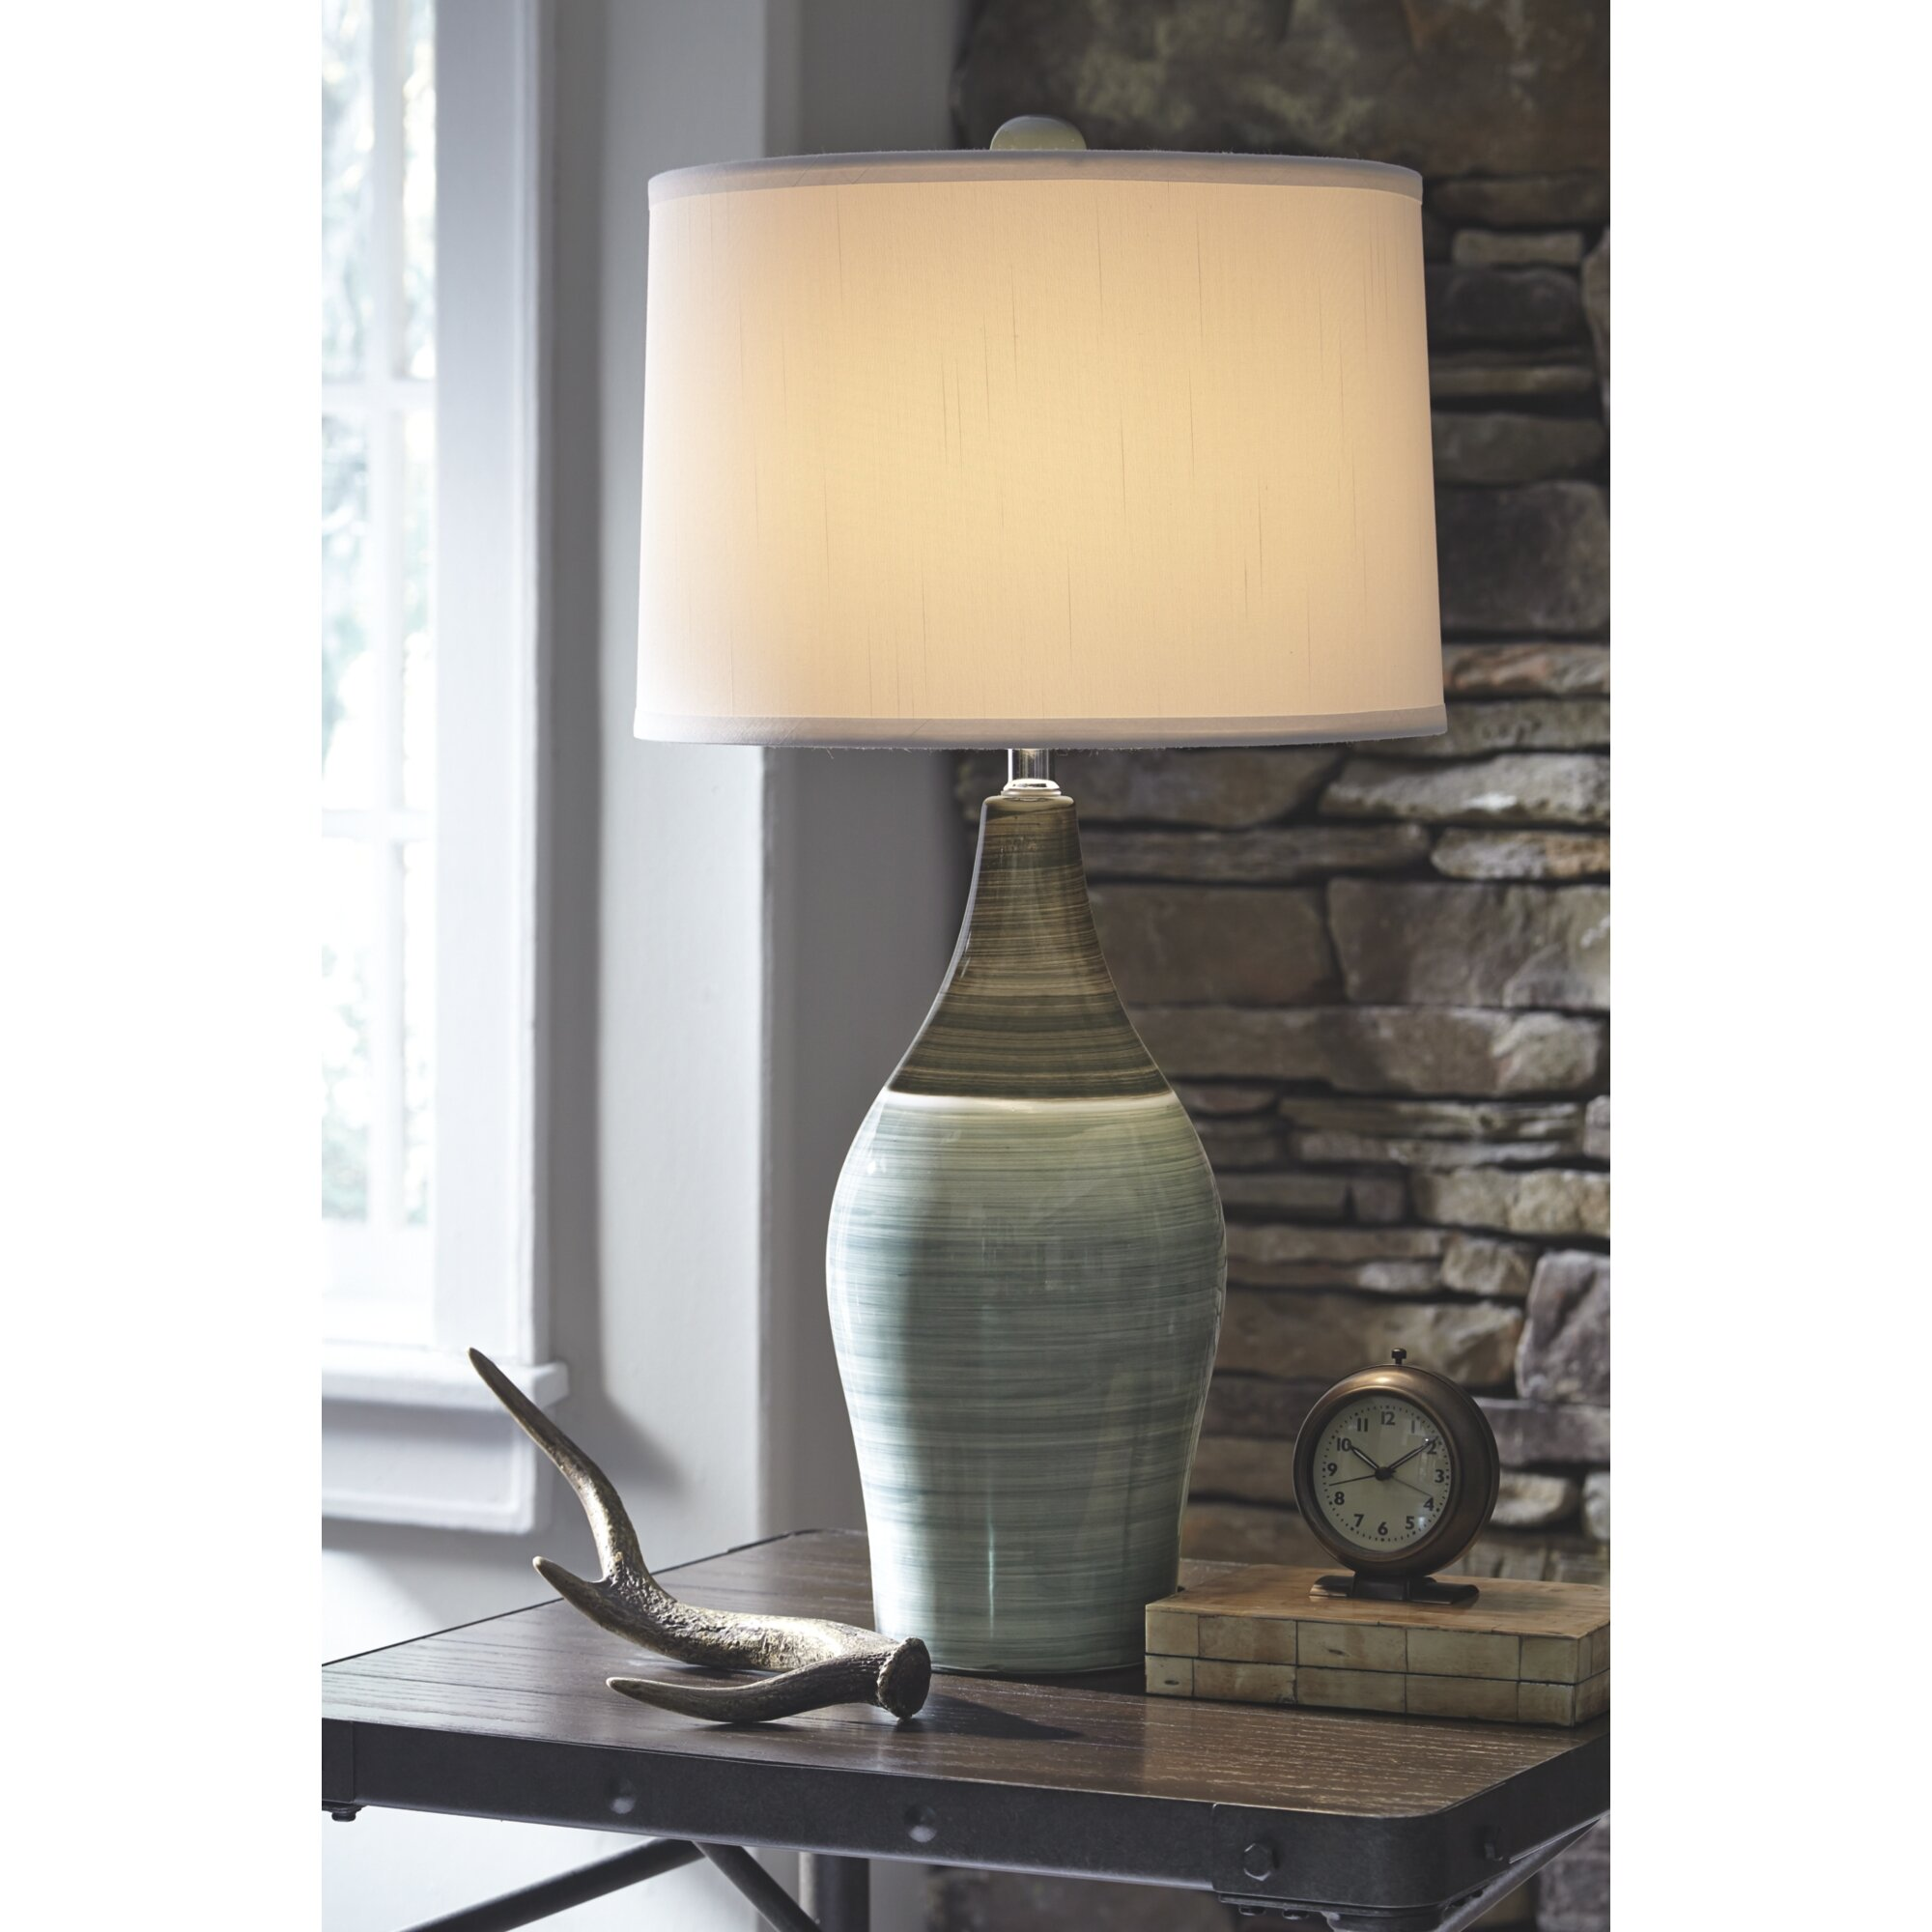 Thiel 28 table lamp reviews birch lane